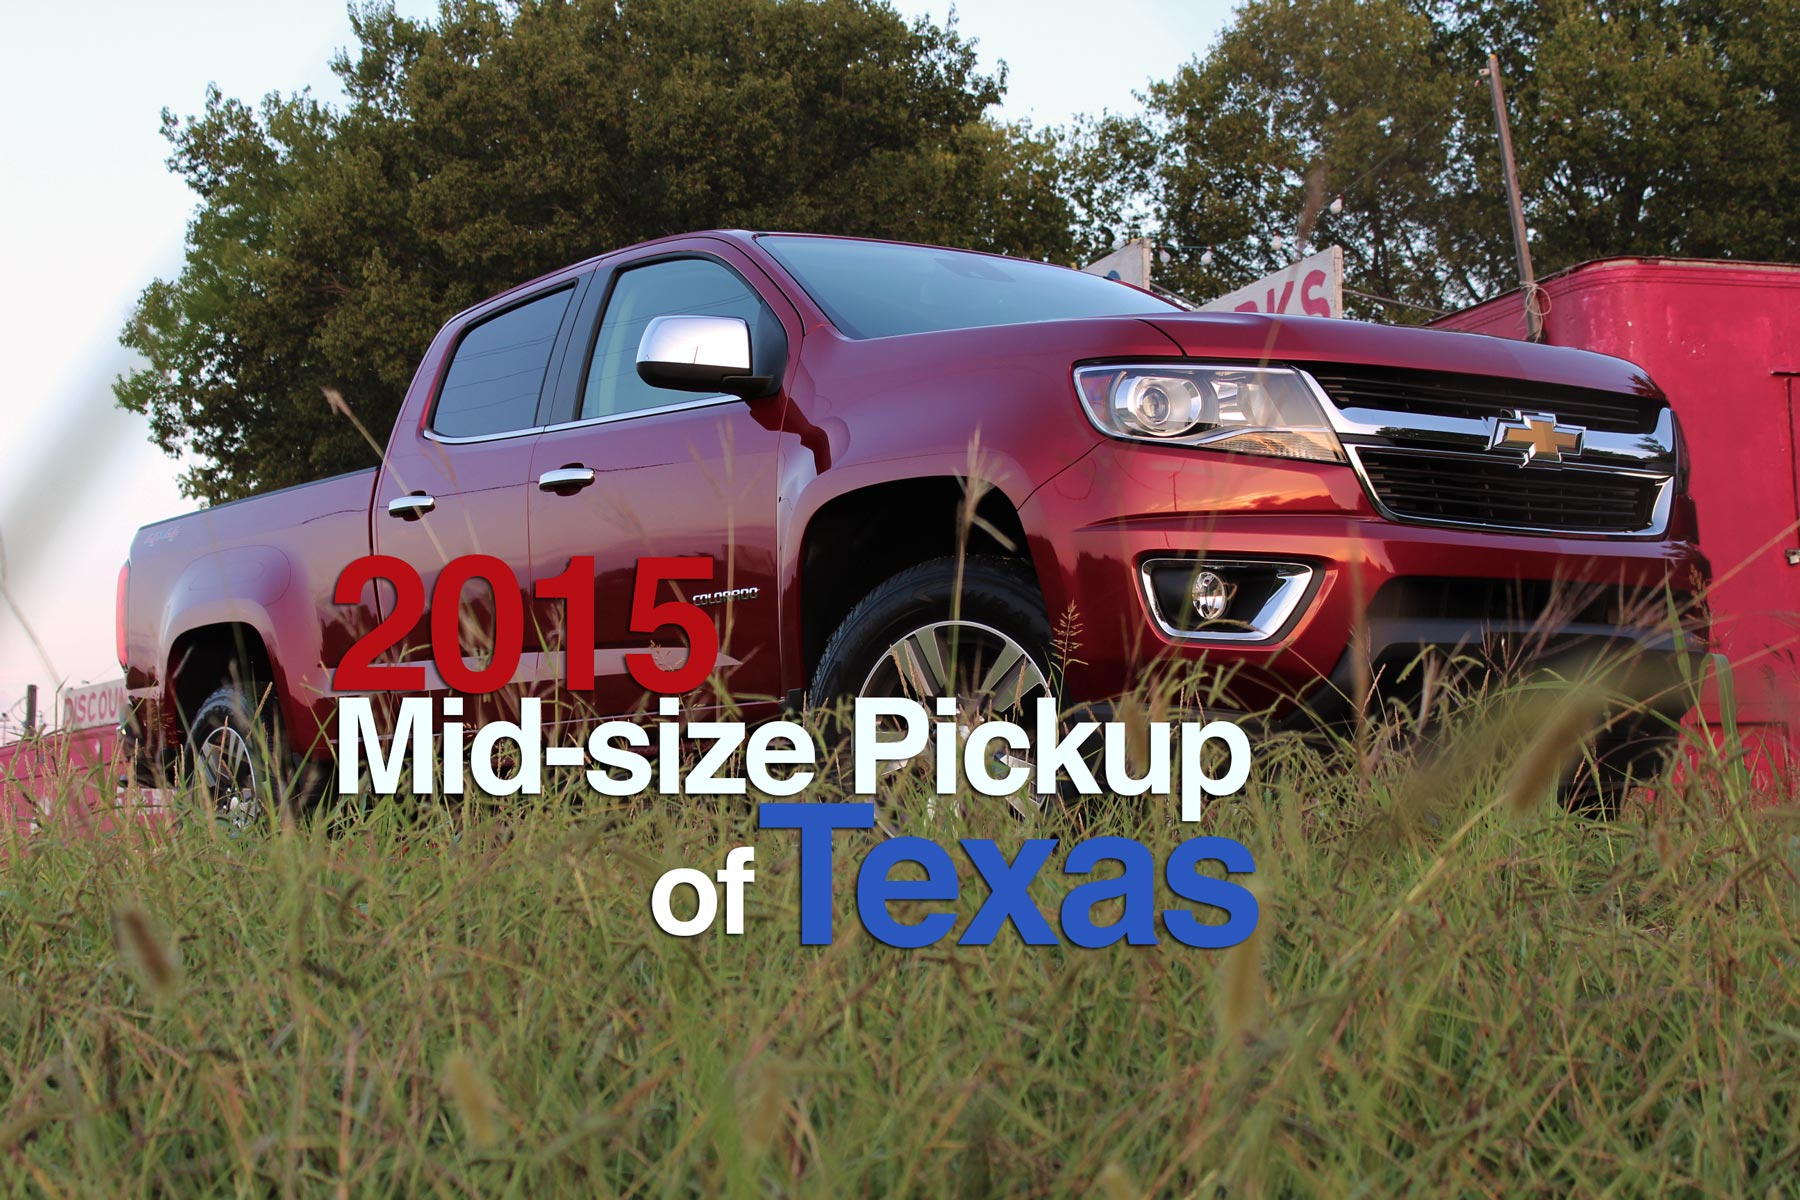 2015 Chevrolet Colorado - The Mid-Size Pickup of Texas